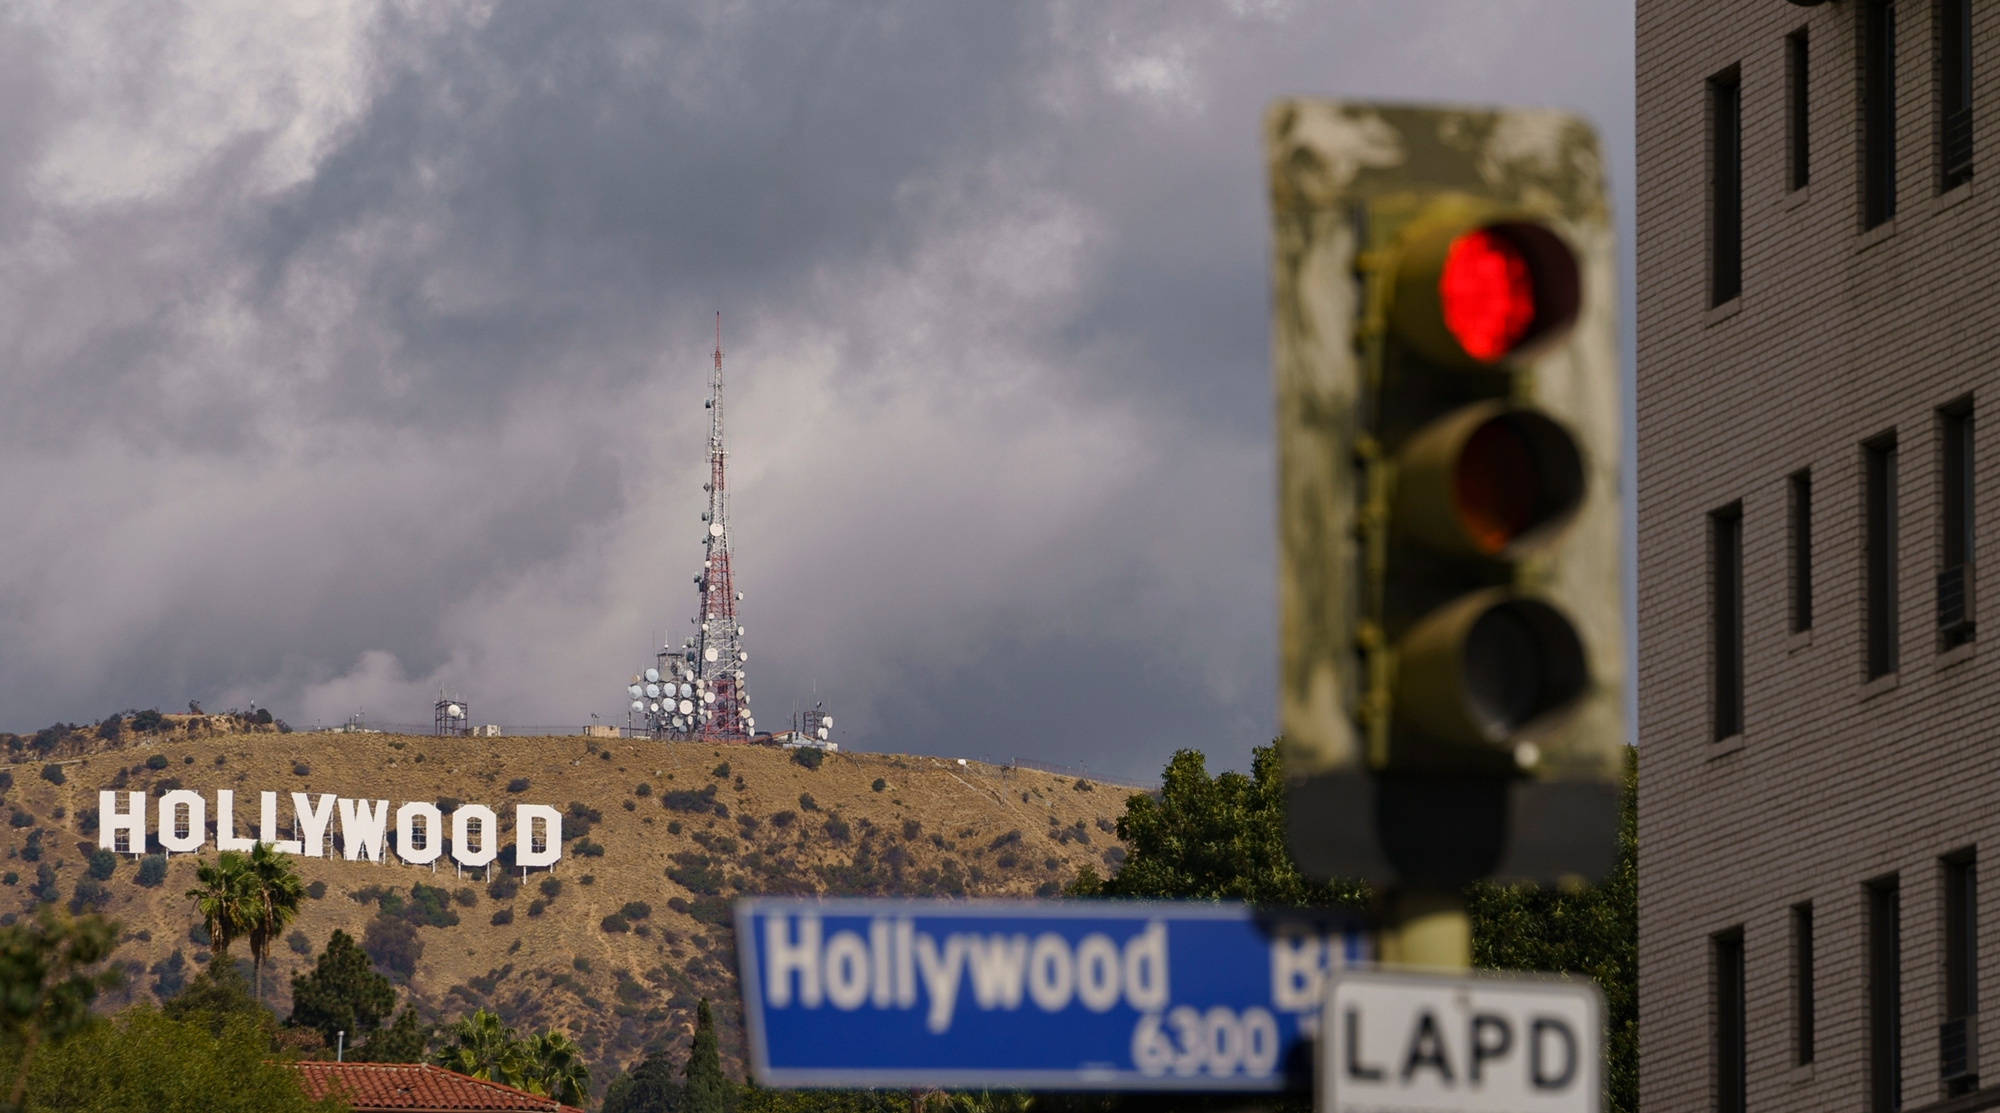 Clouds move over the Hollywood sign in Los Angeles on November 7.